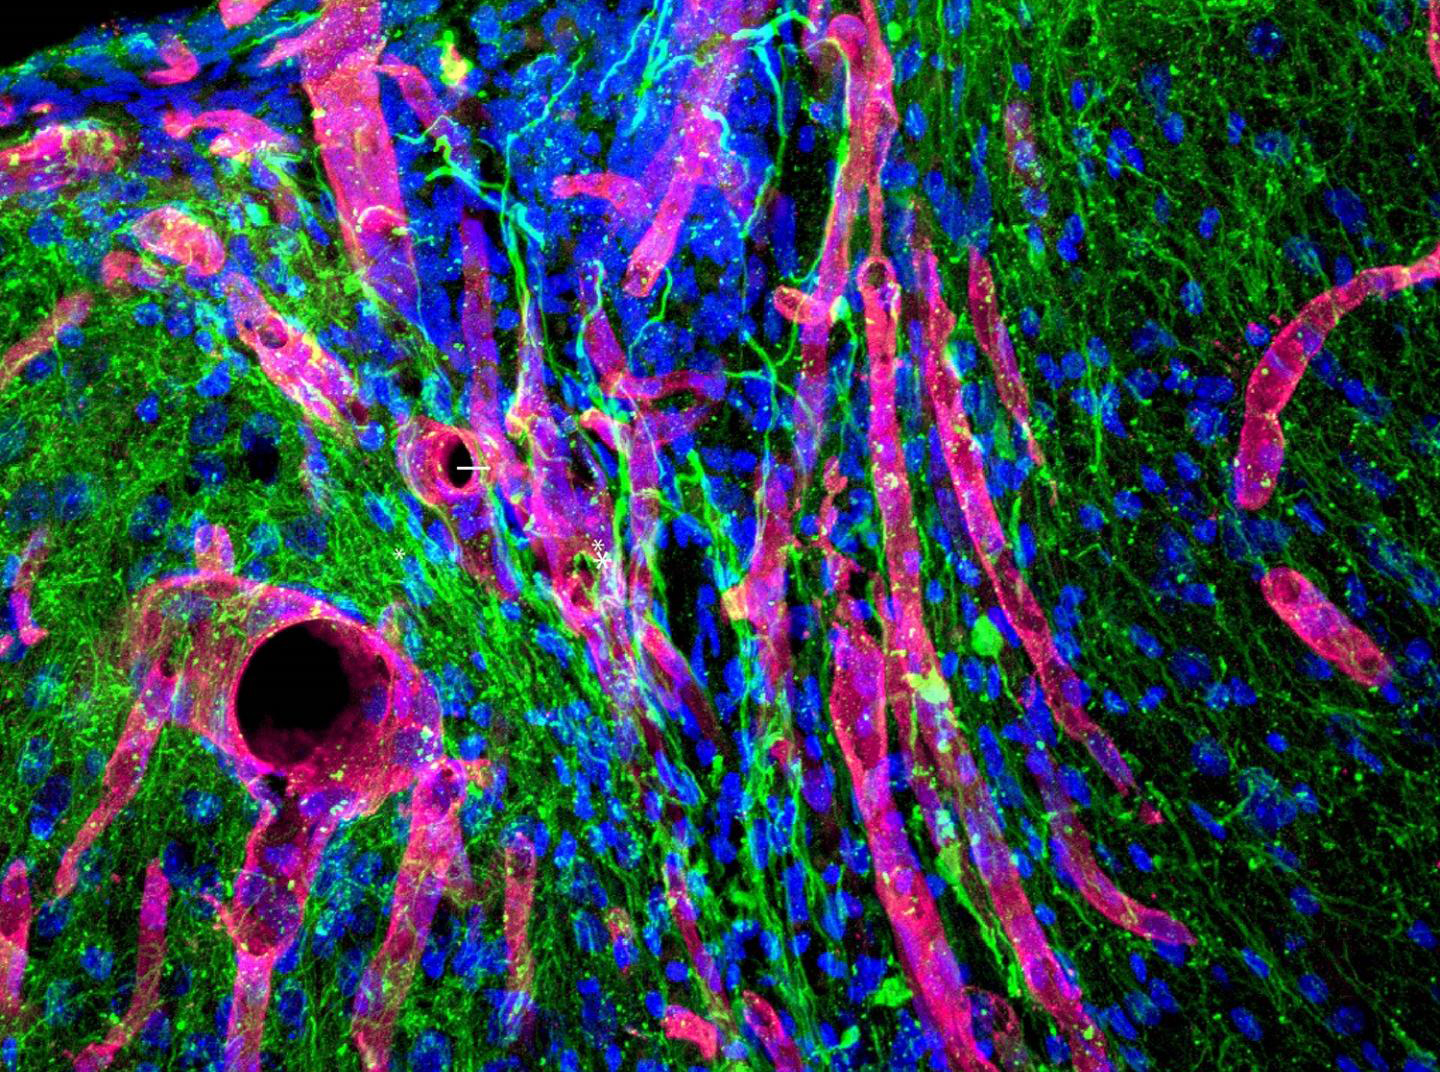 VEGF Biogel Promotes Brain Tissue Growth and Limb Recovery after